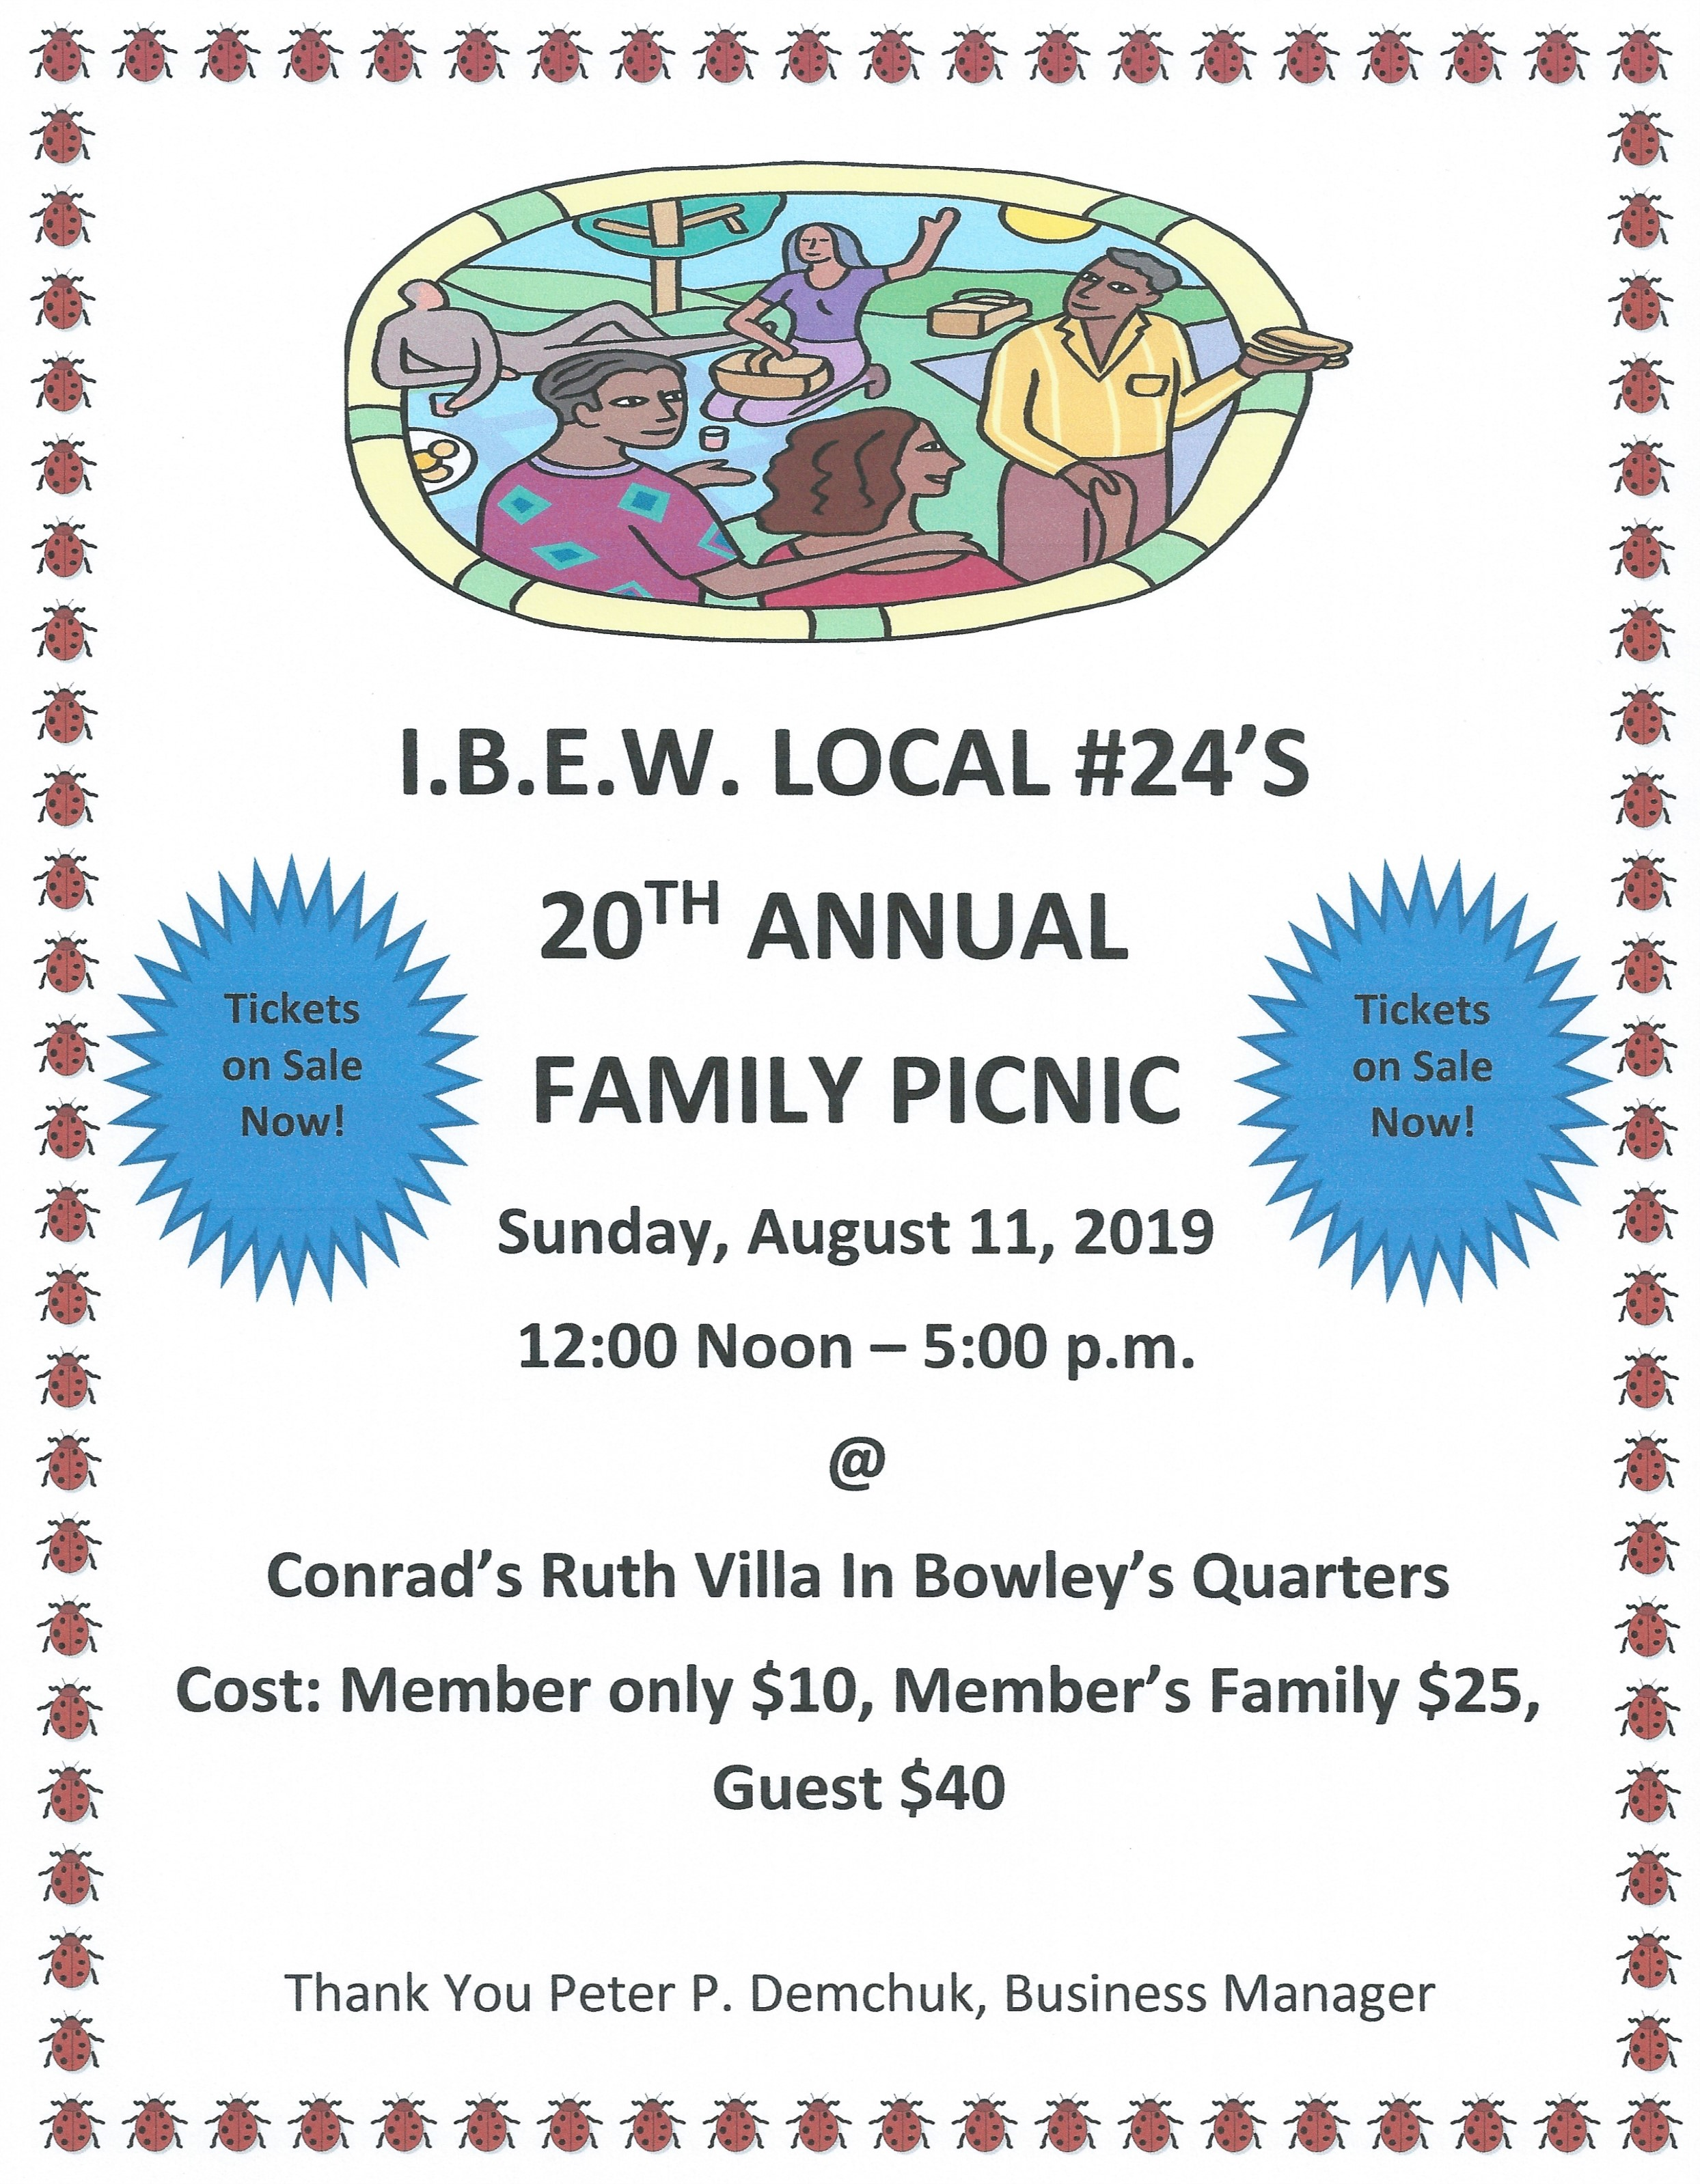 <br /><strong>A great day of family fun on Sunday, August 11